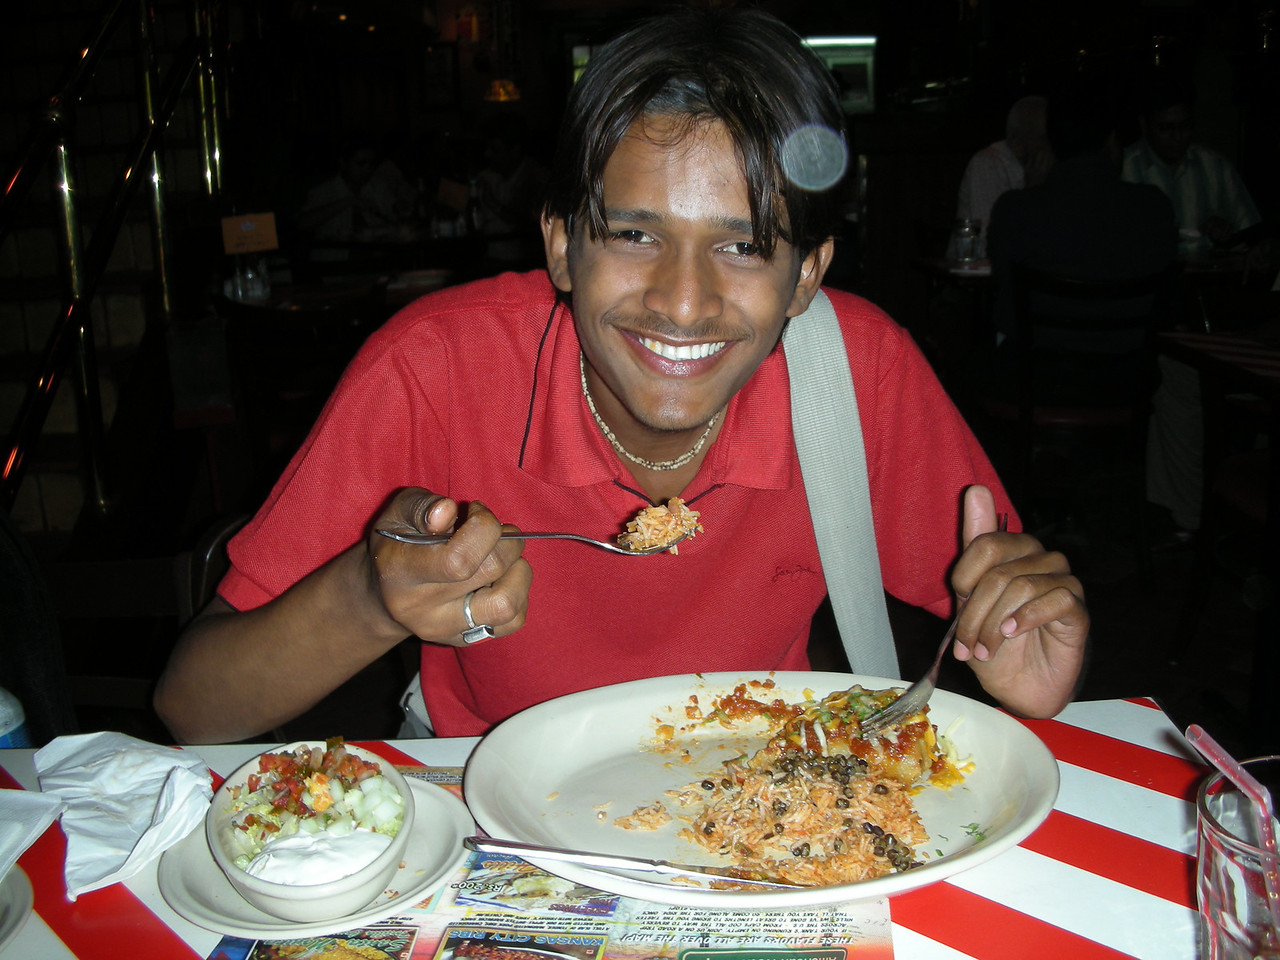 Delhi: Amar eating American food (Mexican really) at TGI Fridays following the previous Indian meal that Cheryl and Jon ate.